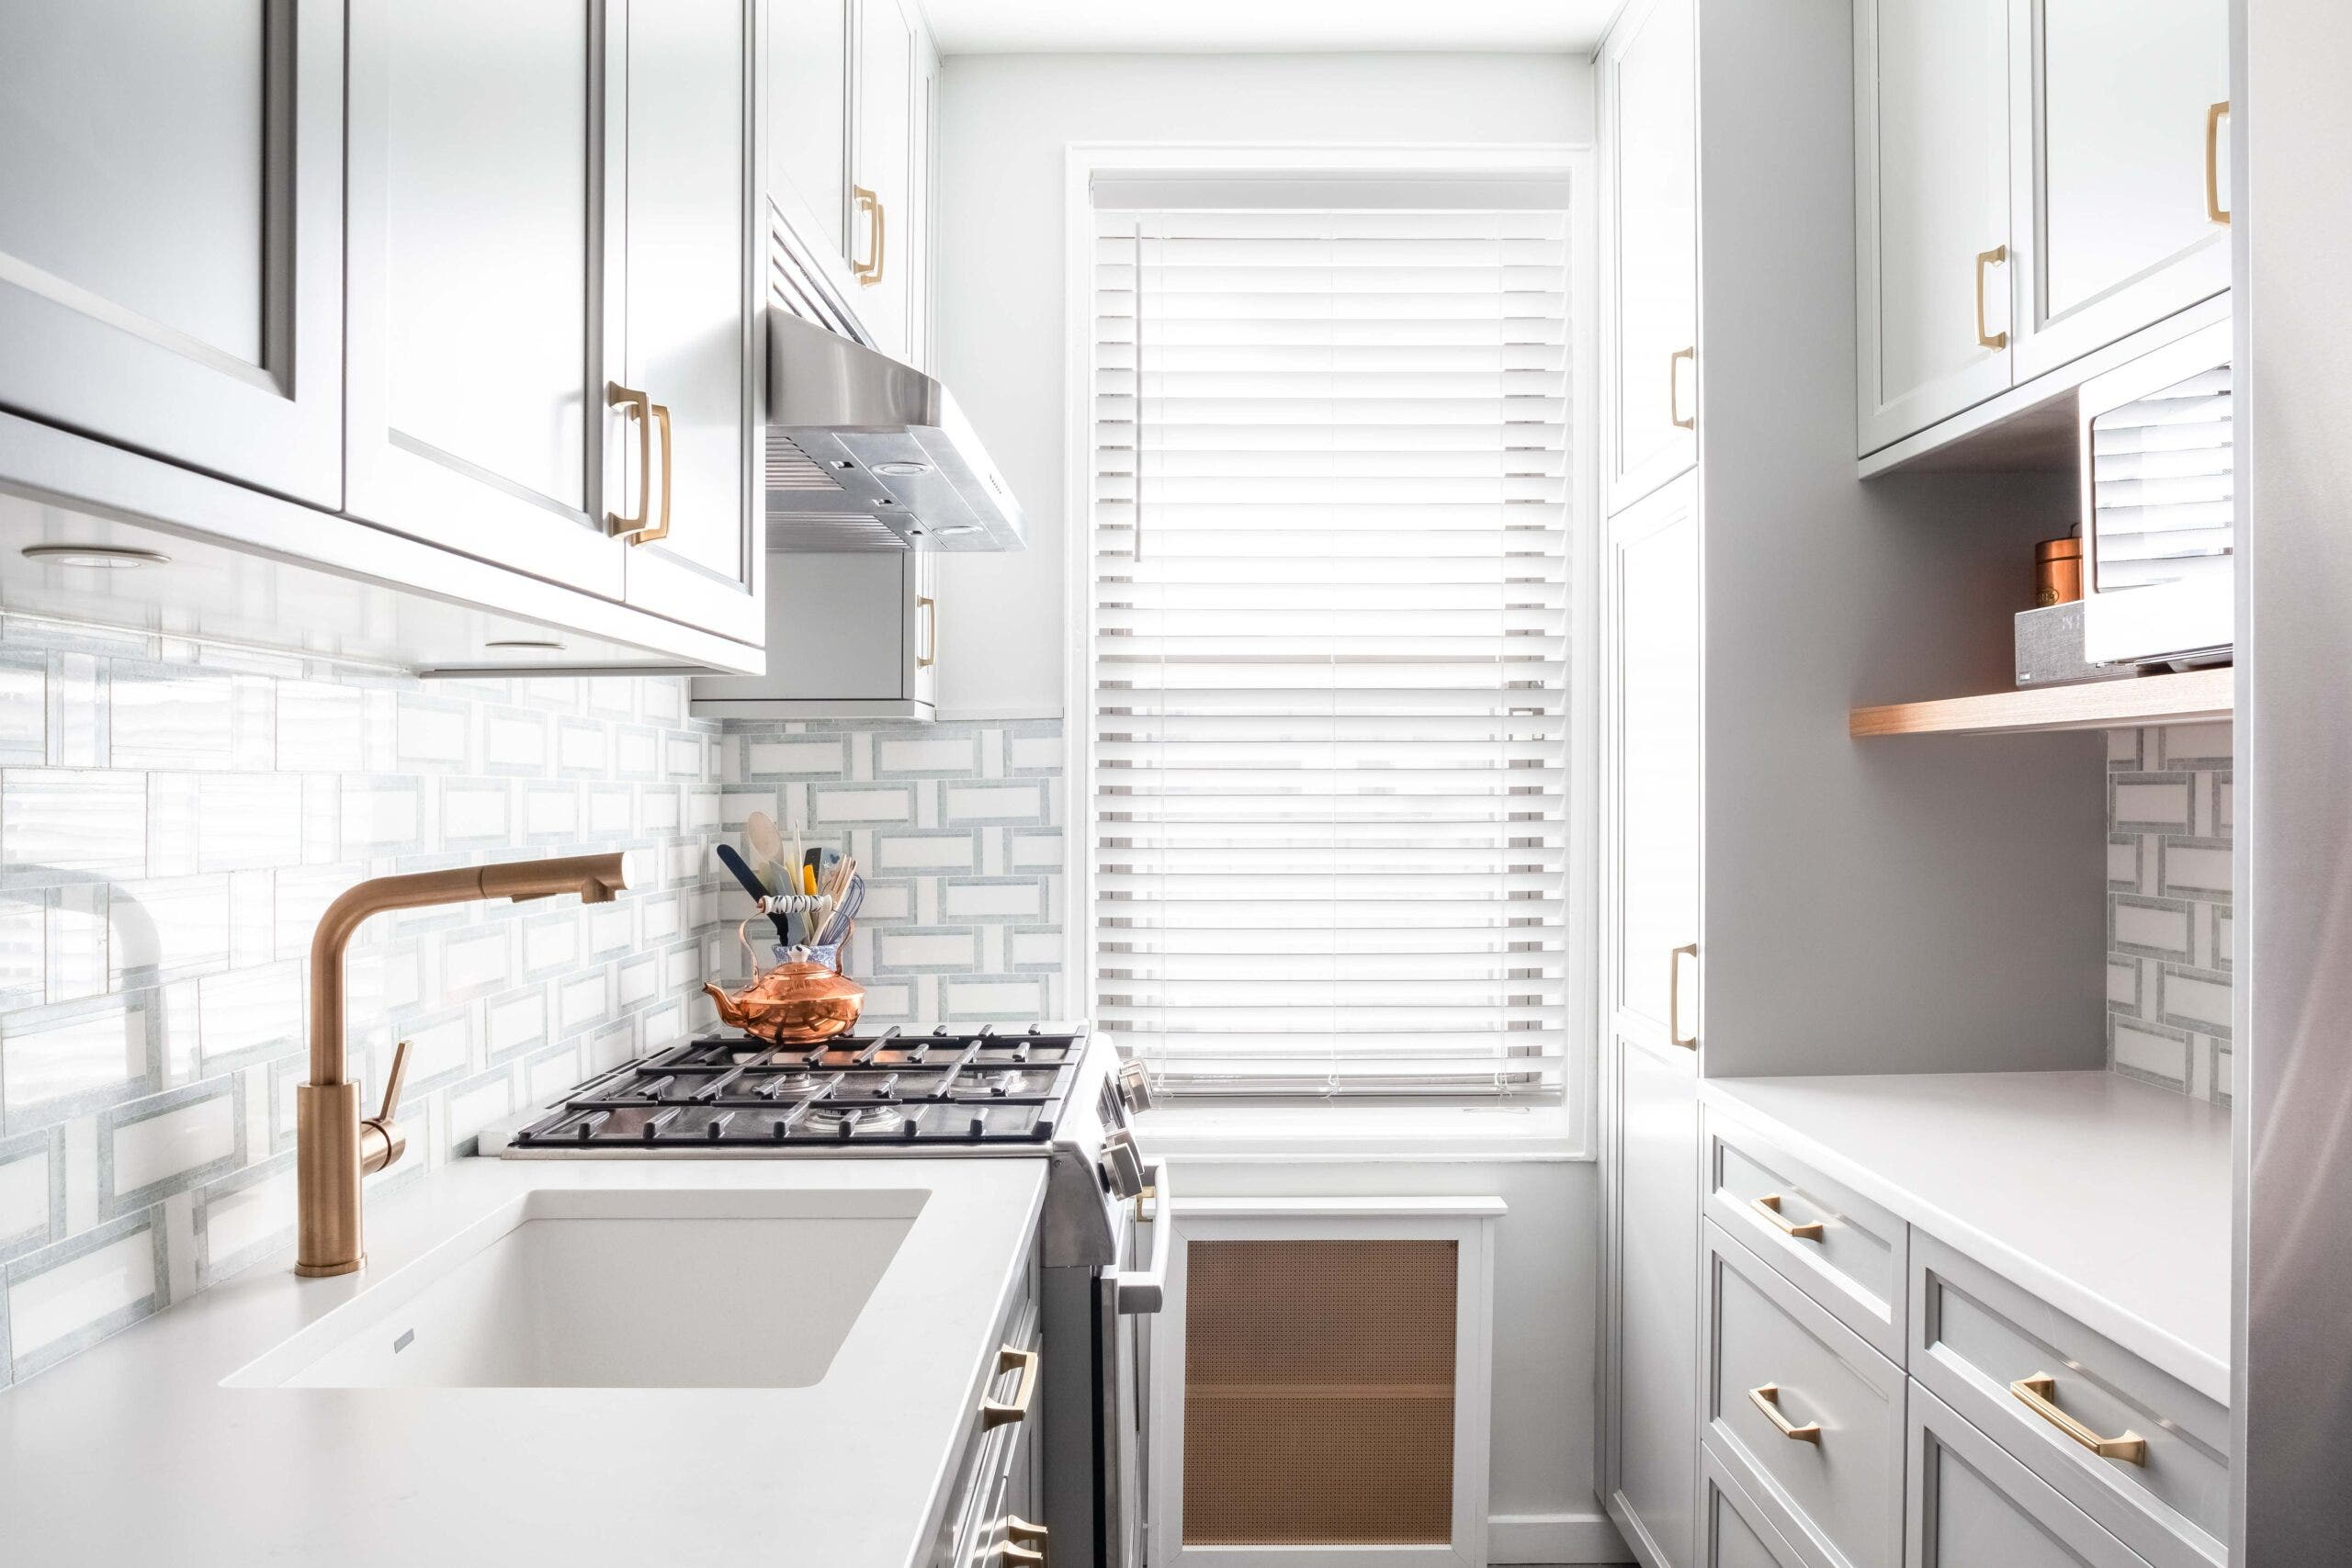 Image of: How To Choose The Best Range Hood For Your Apartment Complete Guide